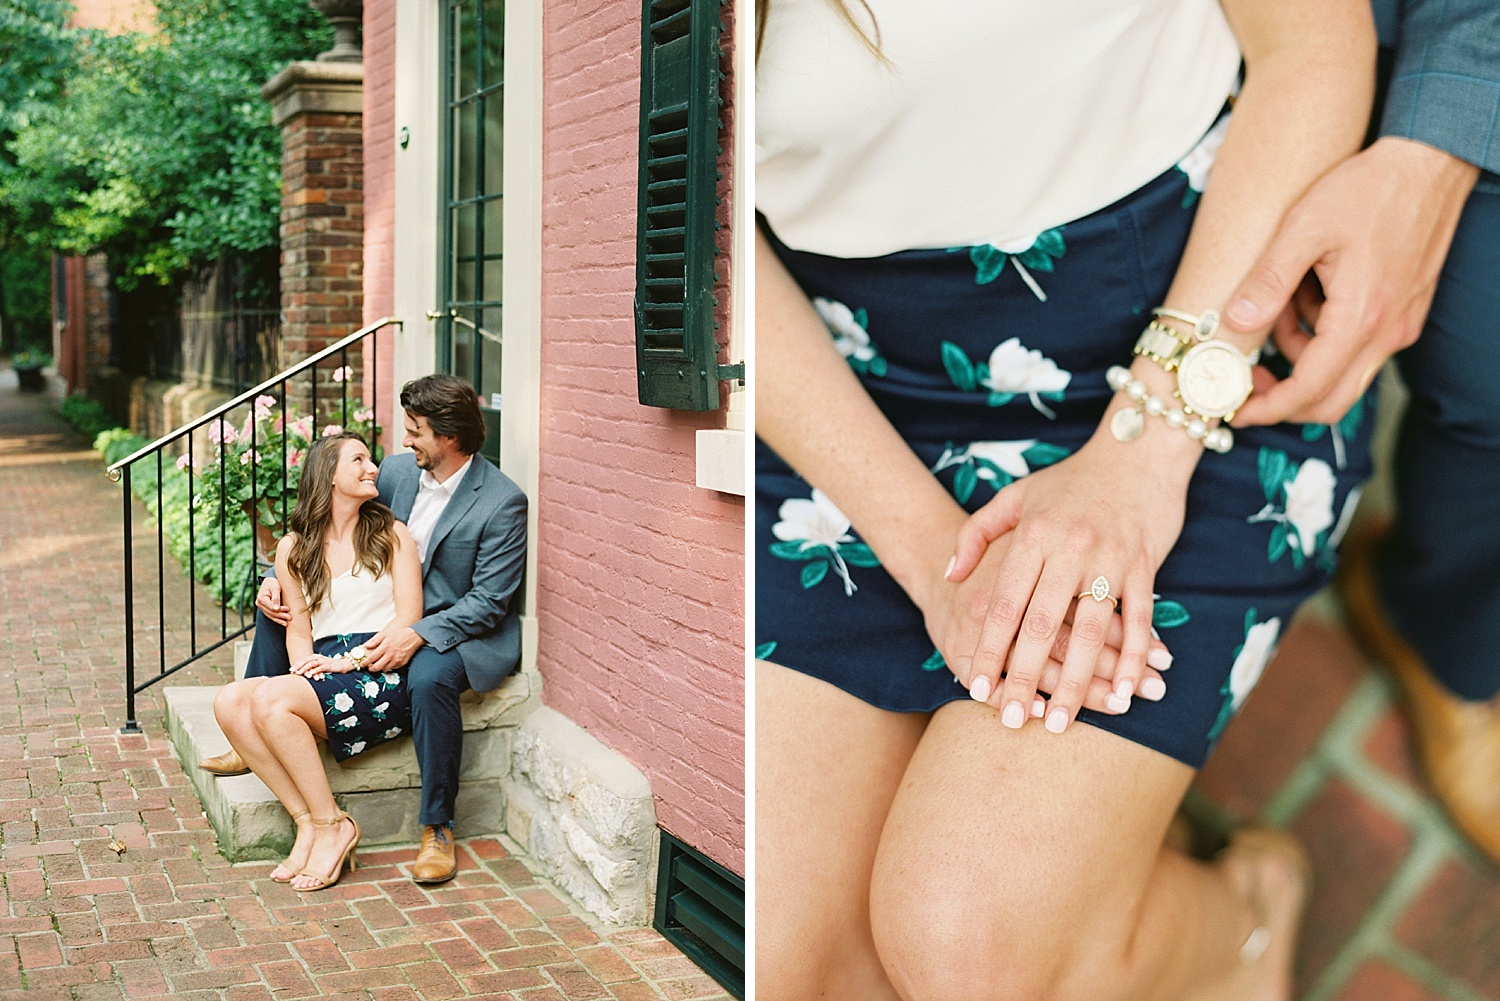 Downtown Lexington Engagement Session Talon Winery Picnic Engagement Session Gal Meets Glam Anthropologie Dress Laura Bodnar Photography Lexington Wedding Photographer Film Photography_0003-1.jpg